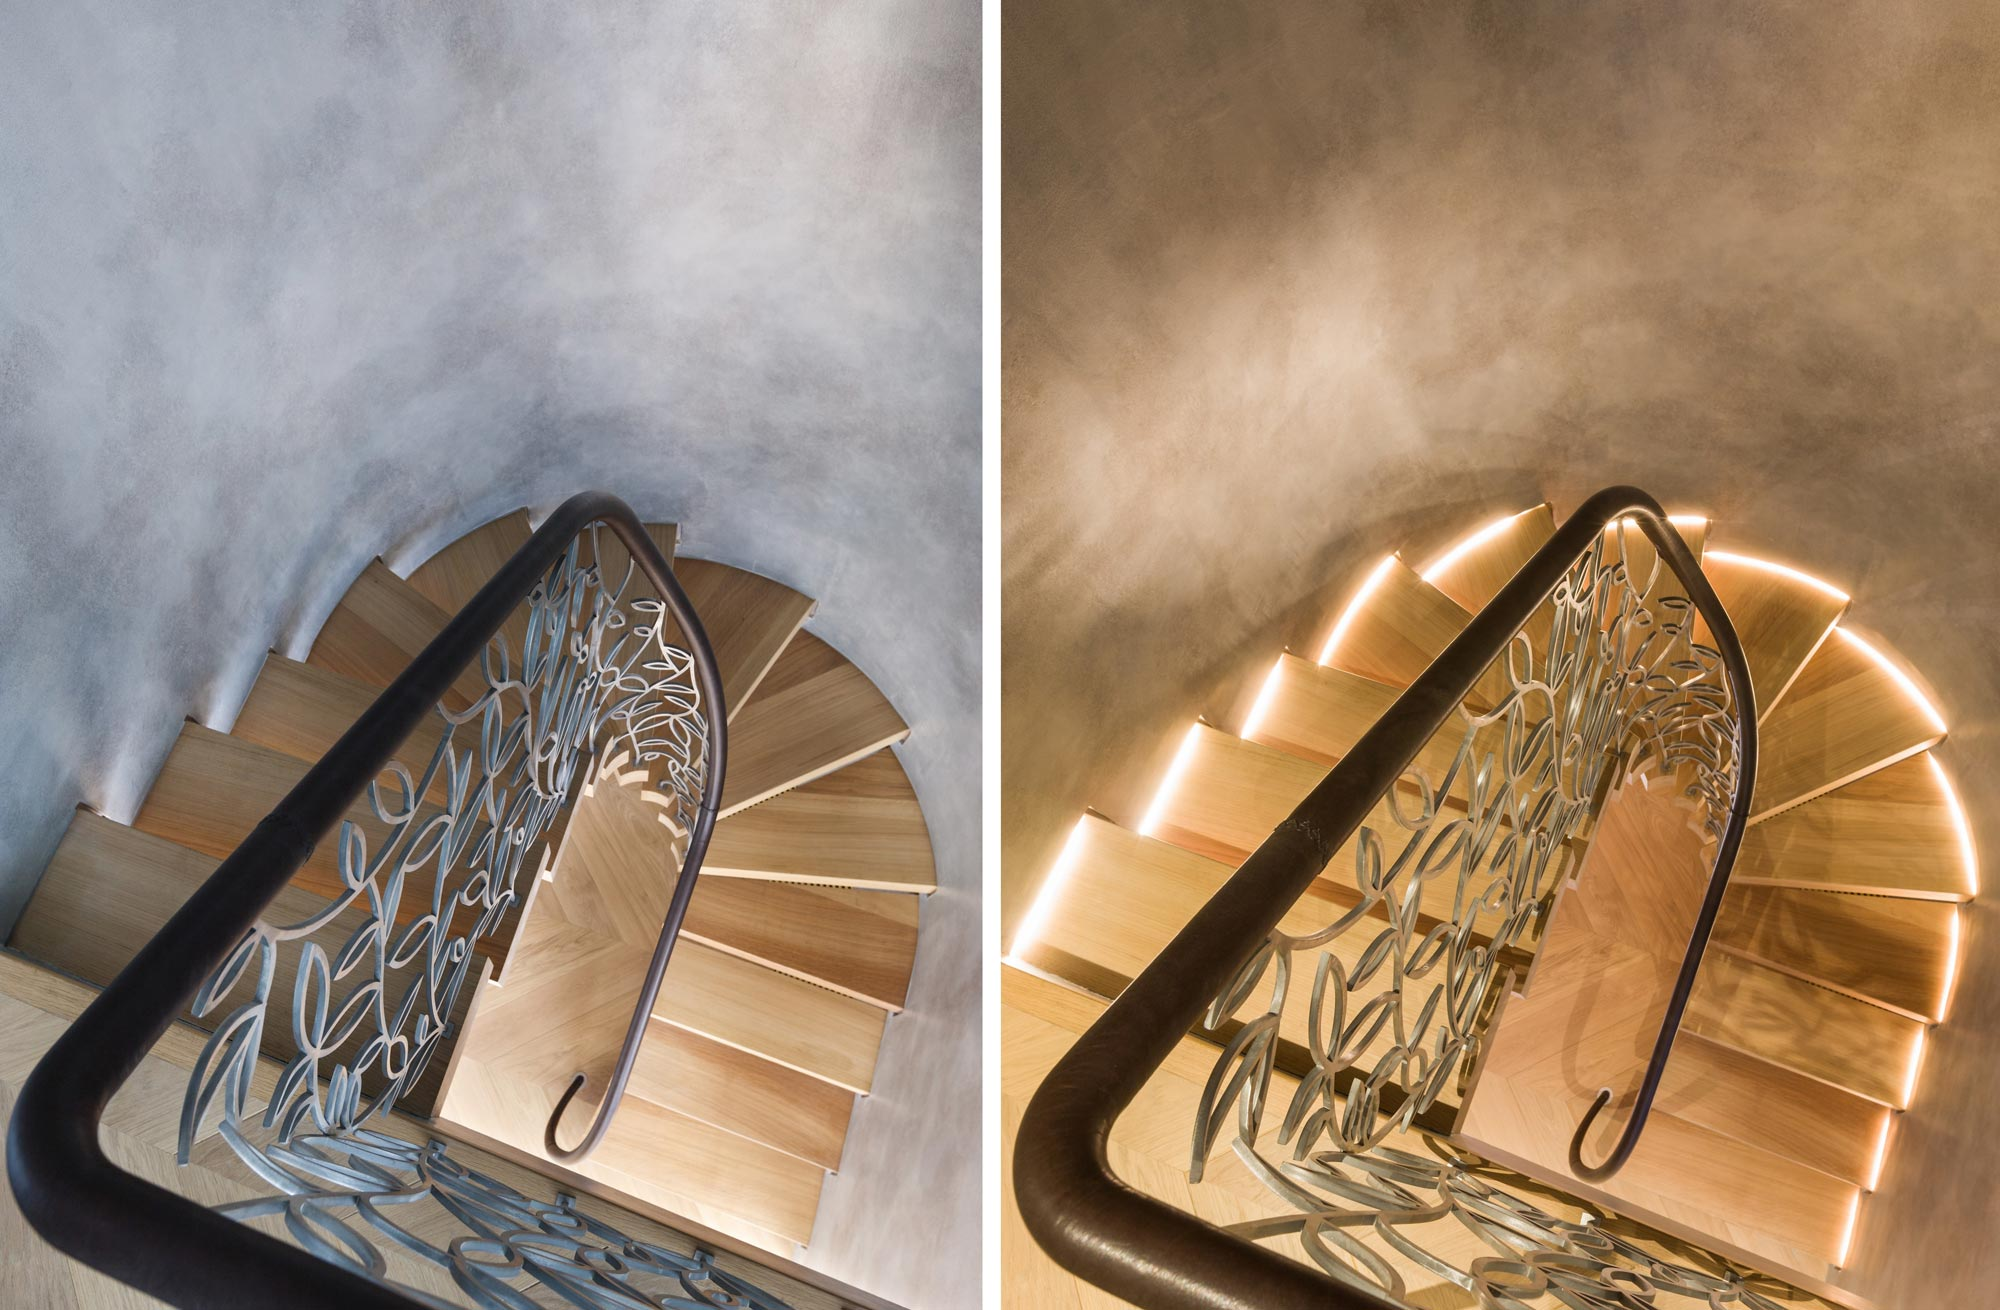 stairwell with lights on and off for warm and cold spiral staircase